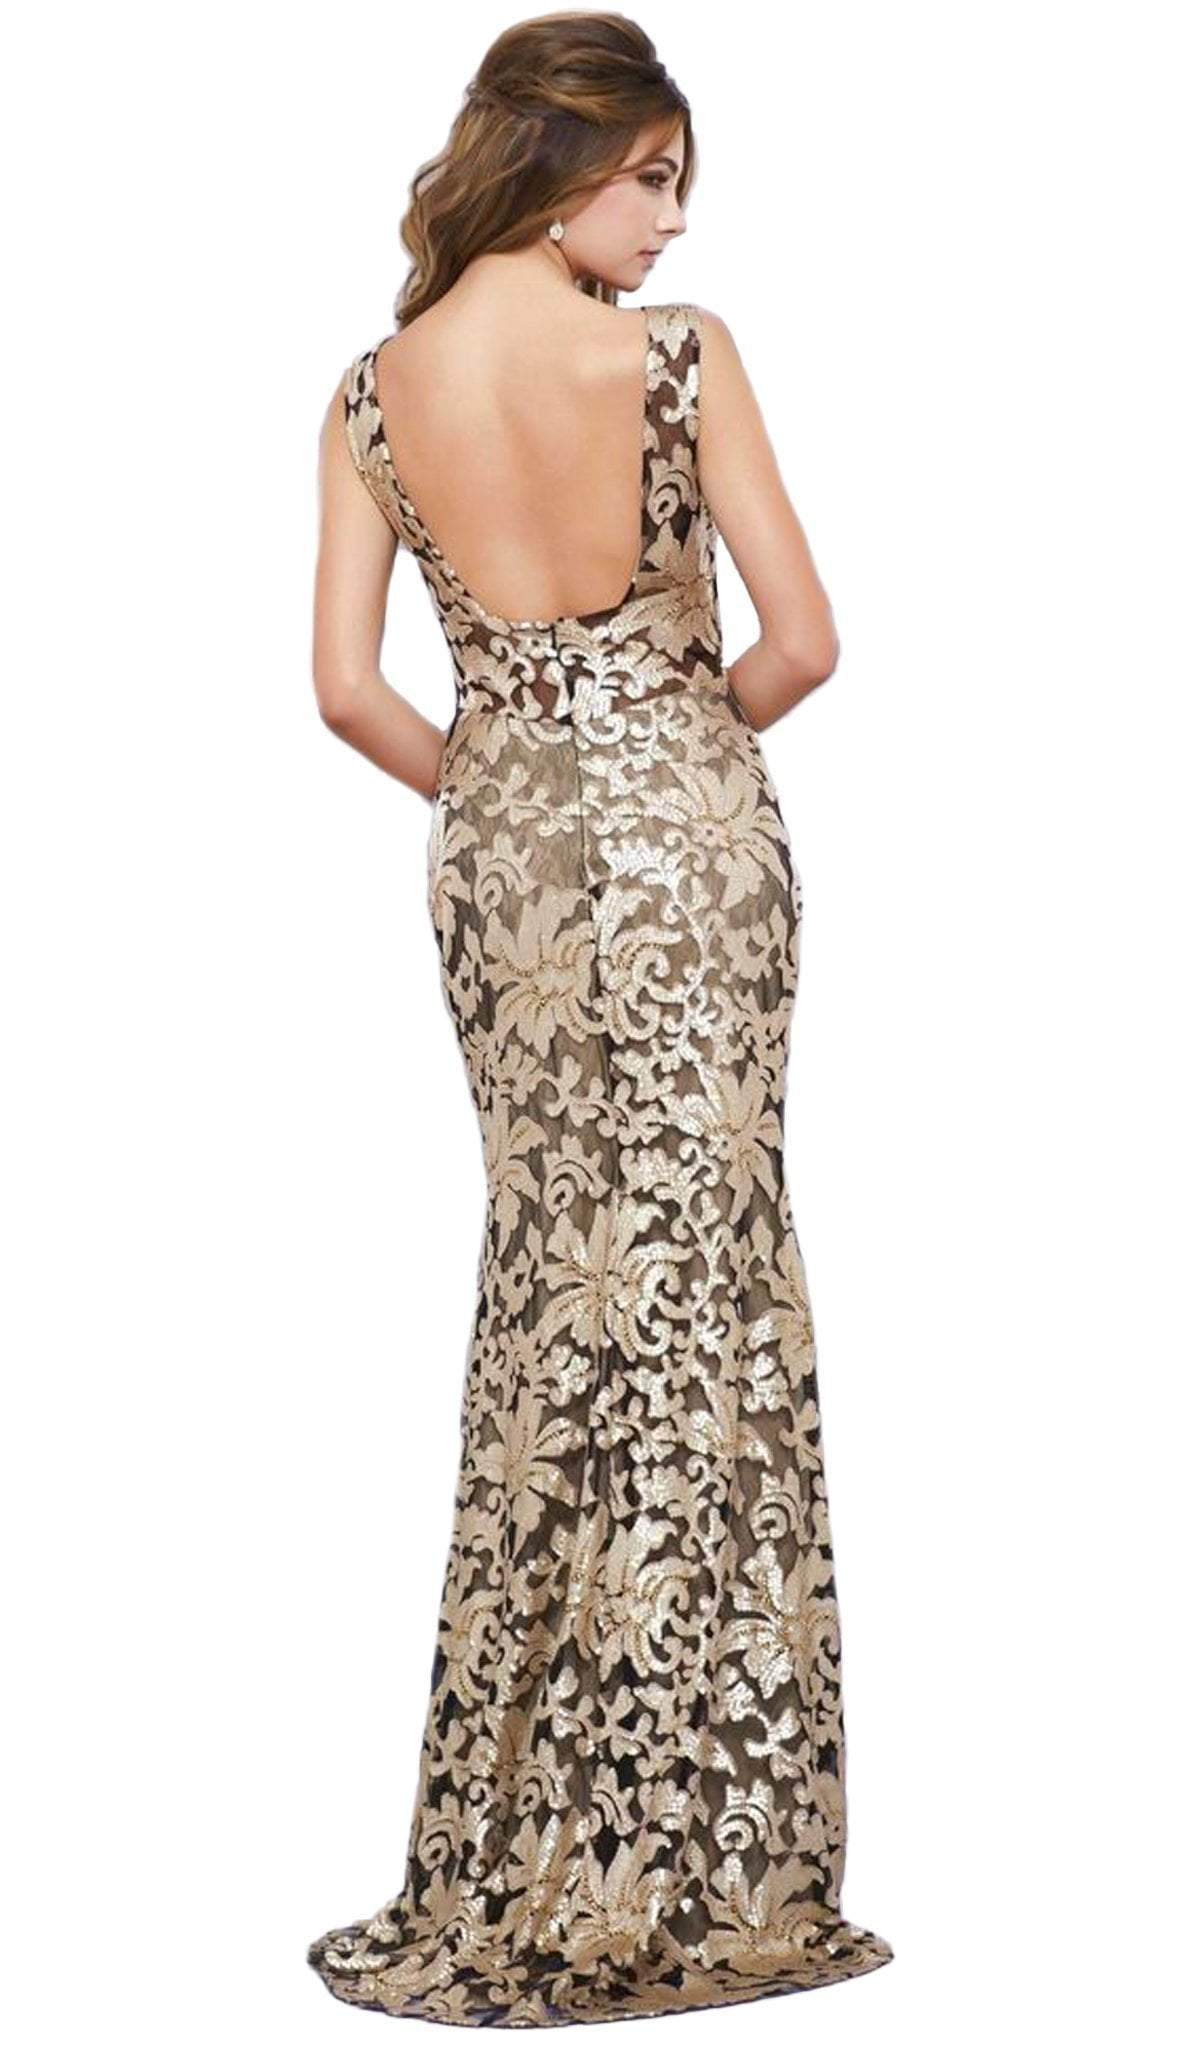 Nox Anabel - Sequined Lace Evening Dress 8260SC